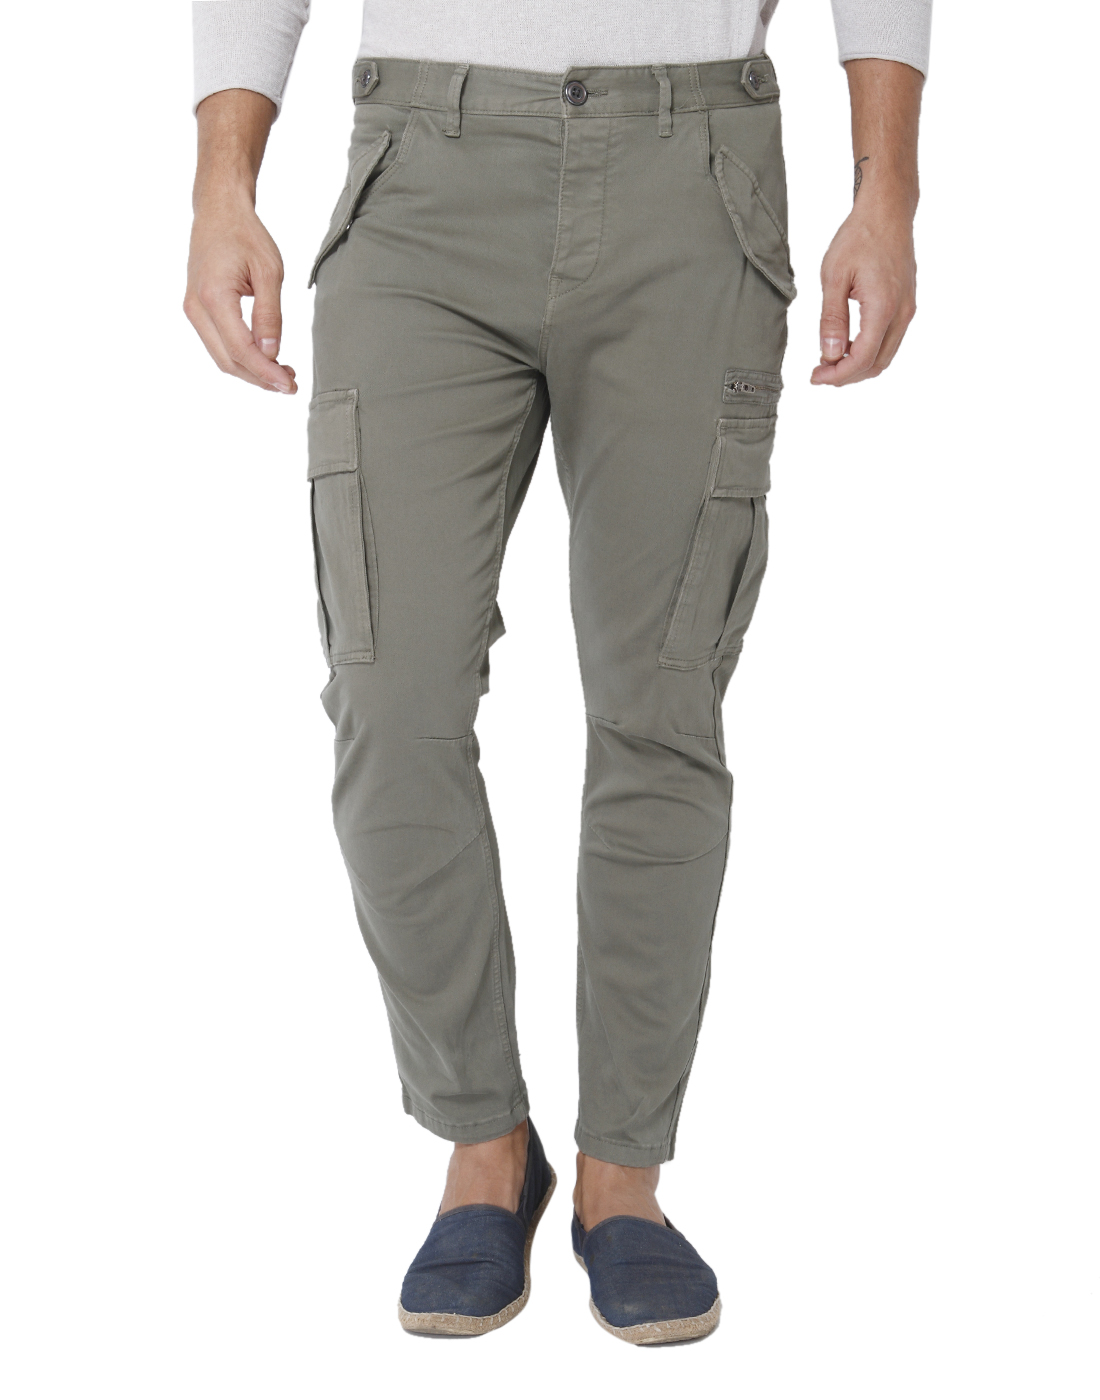 Selected Casual Solid Men Cargo Pants